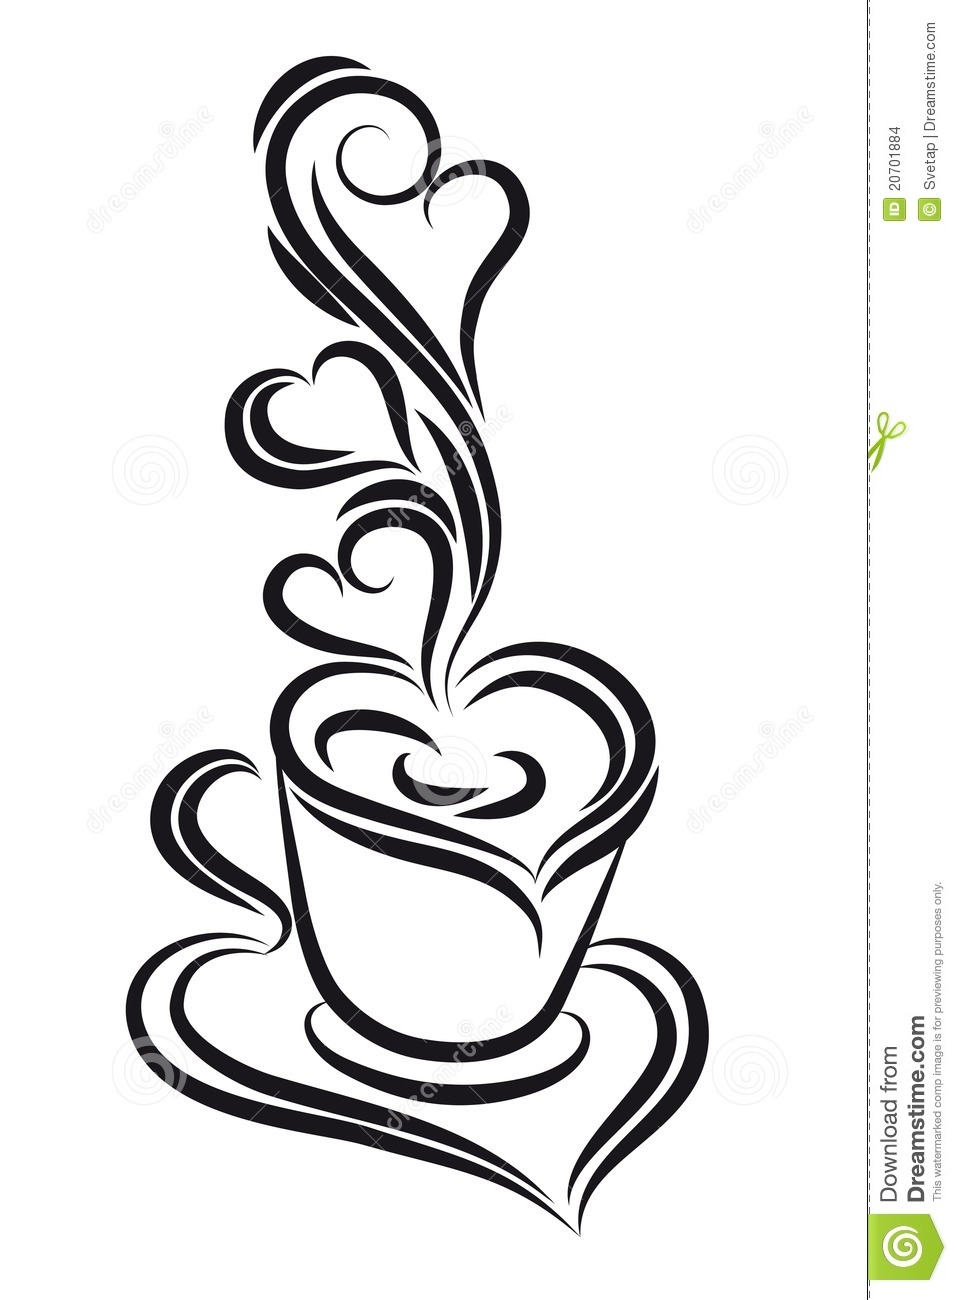 More similar stock images of ` Black and white coffee cup . `